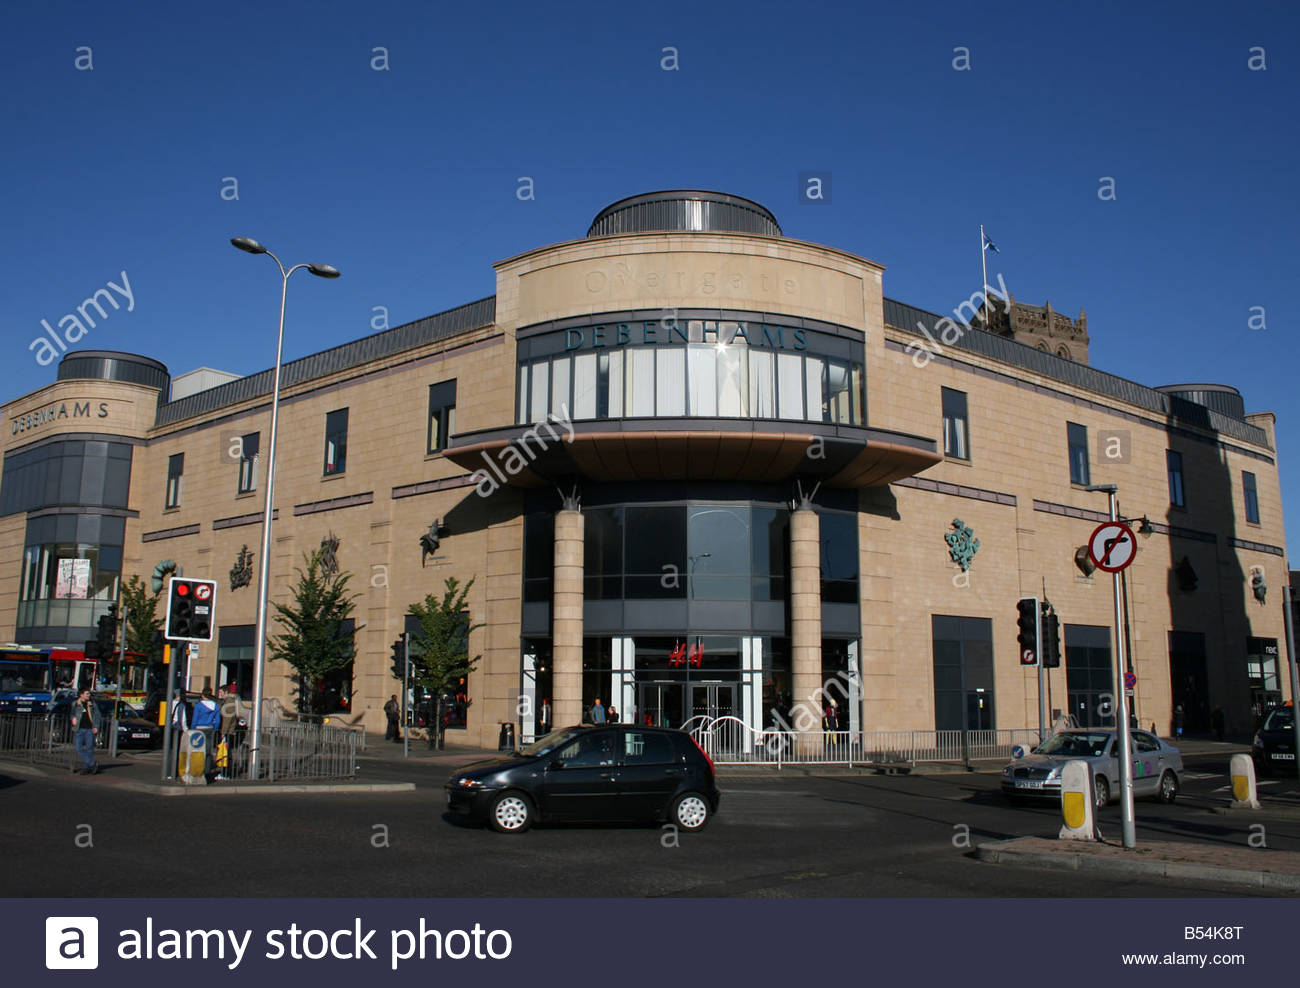 Exterior of Overgate shopping Centre Dundee Scotland Stock Photo